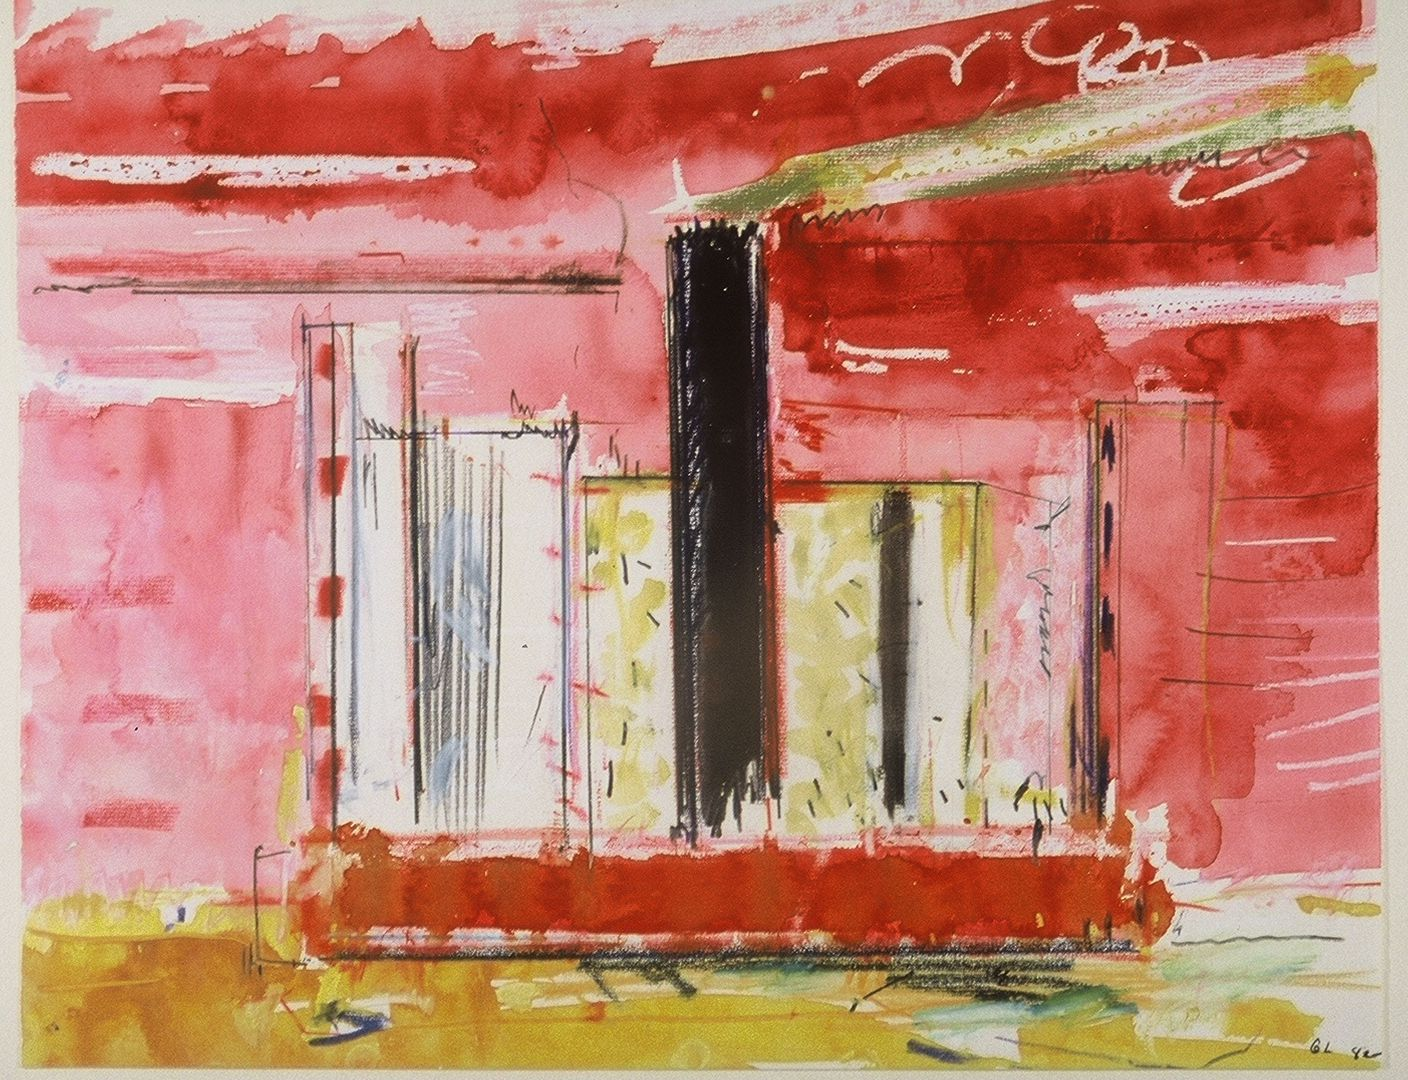 "RED BARGE      , Ithaca NY      1982 15 x 19"" ,    watercolor  etc on laid paper"